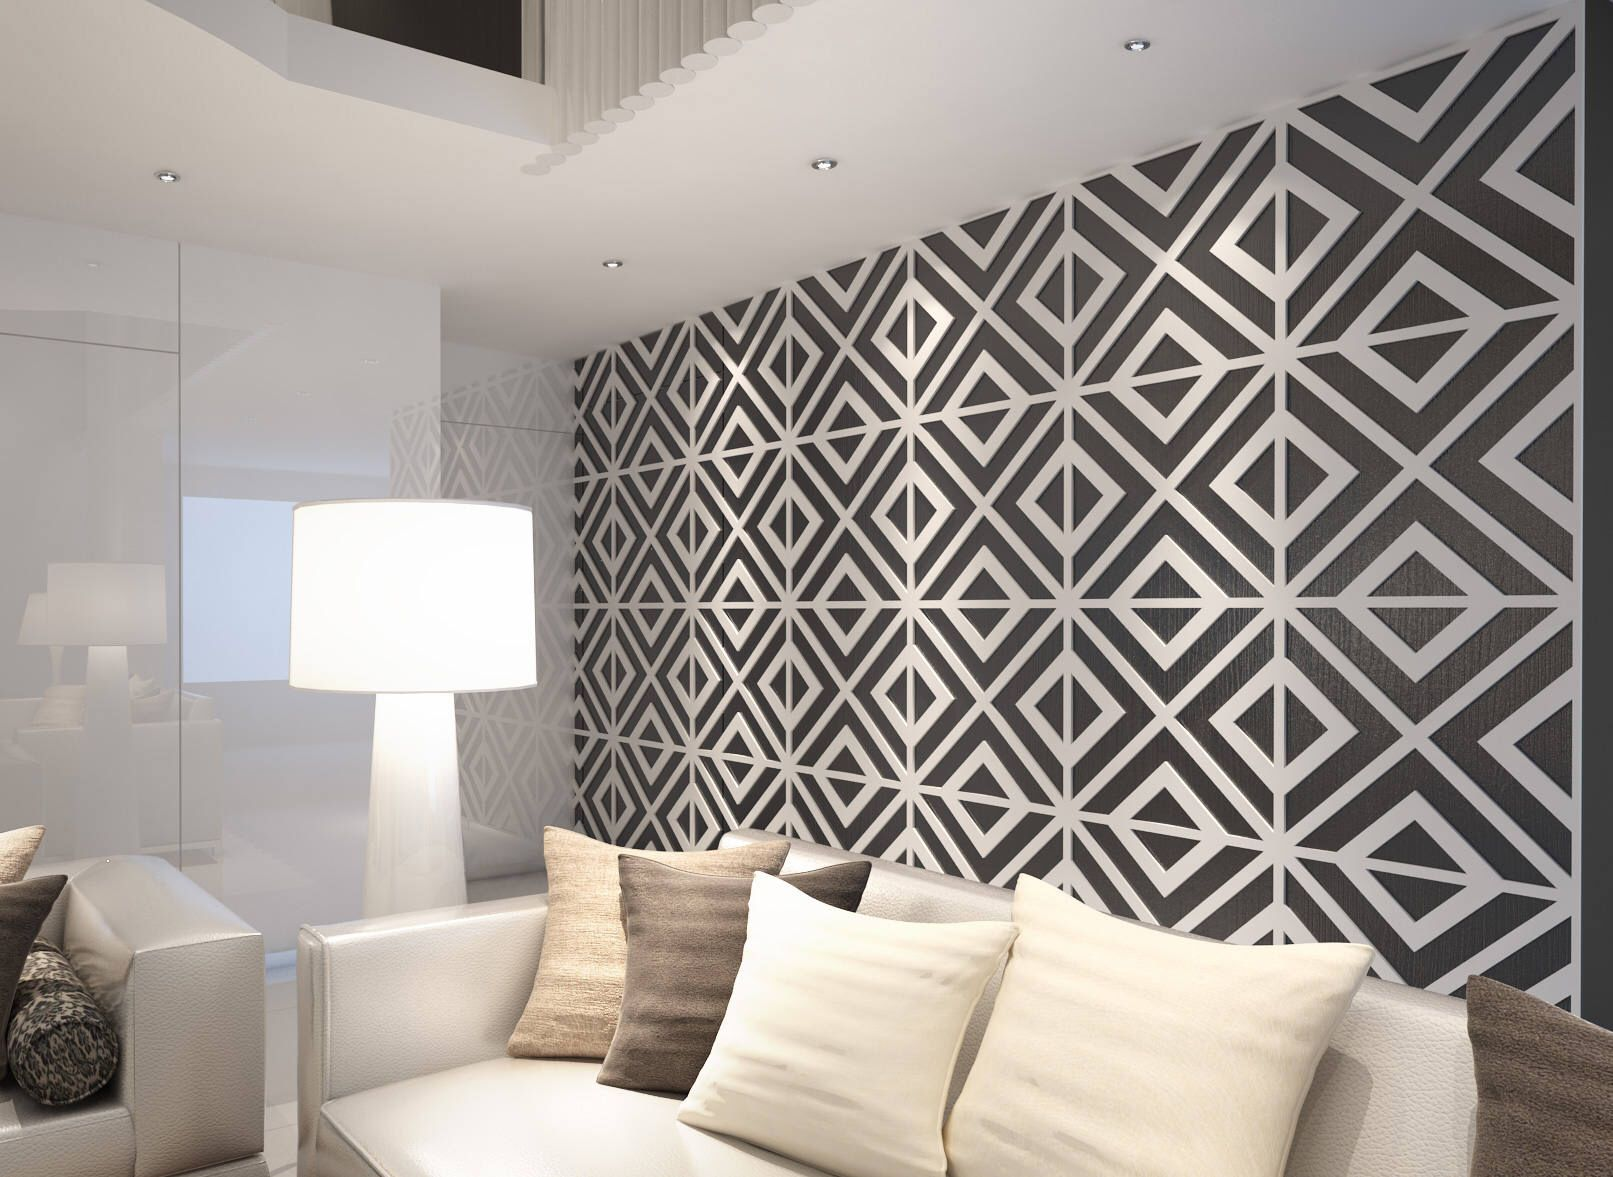 Mid Century Wall Art Geometric Wall Art Mid Century Modern Etsy Accent Walls In Living Room Decorative Wall Panels Wall Paneling